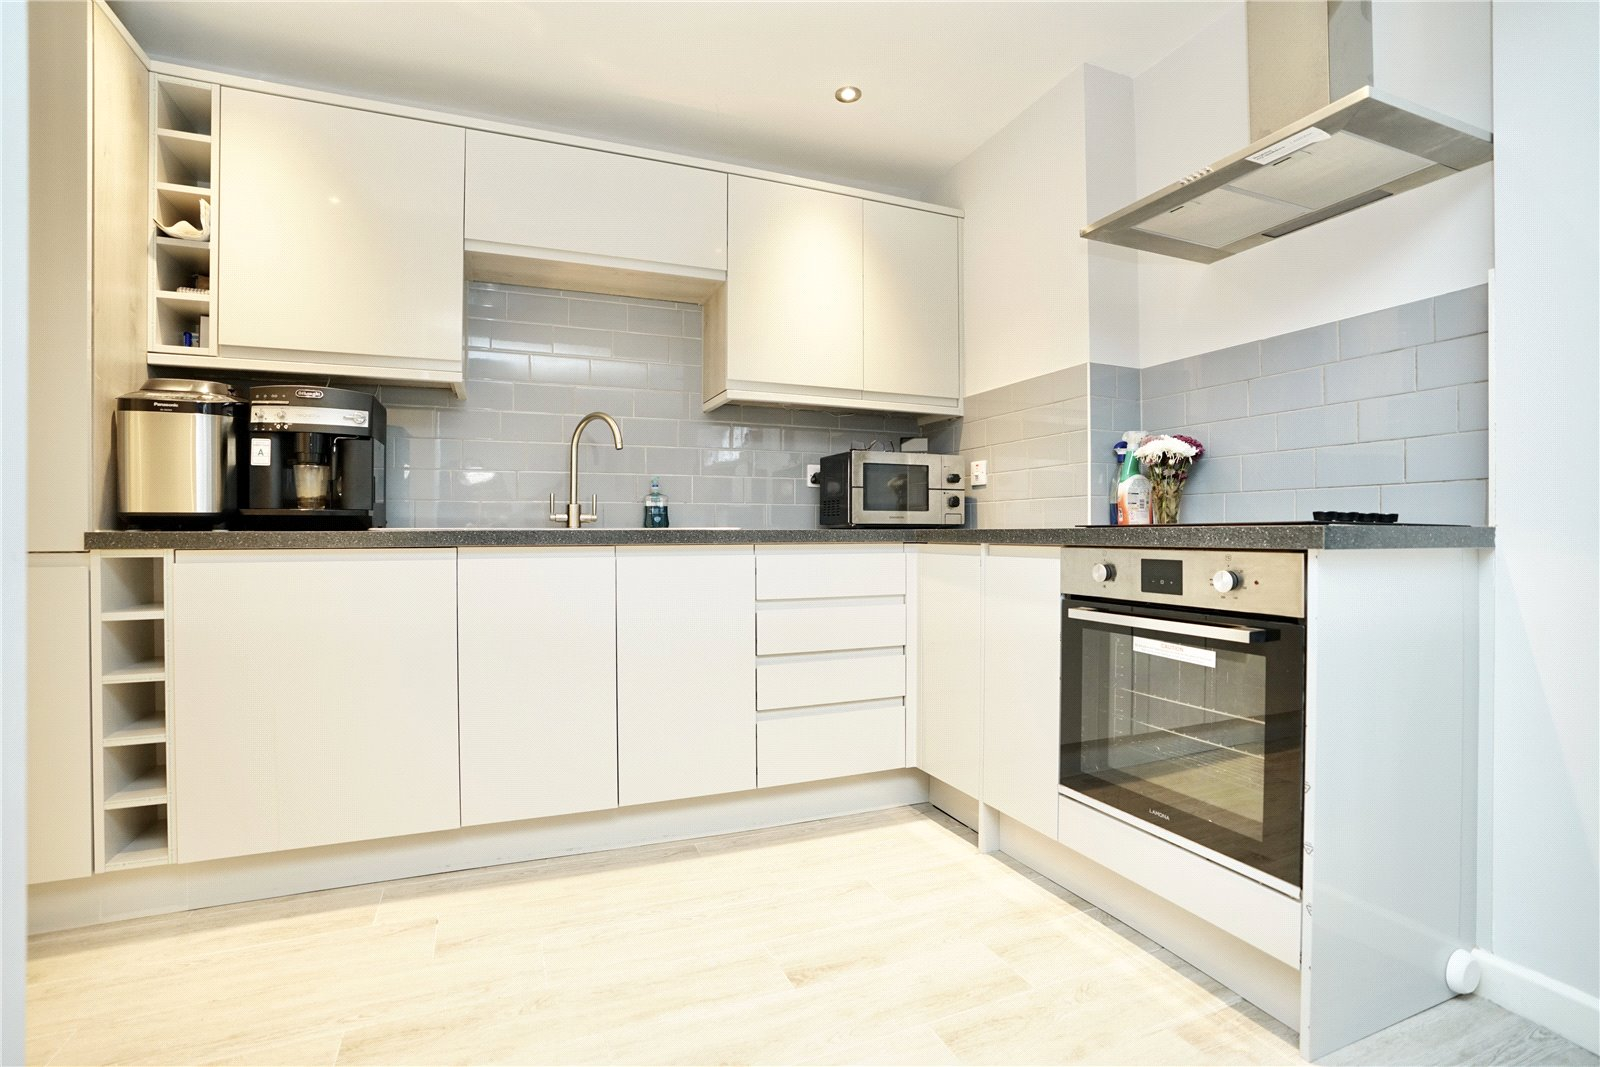 1 bed apartment for sale in Manchester Place, PE29 3EL, PE29